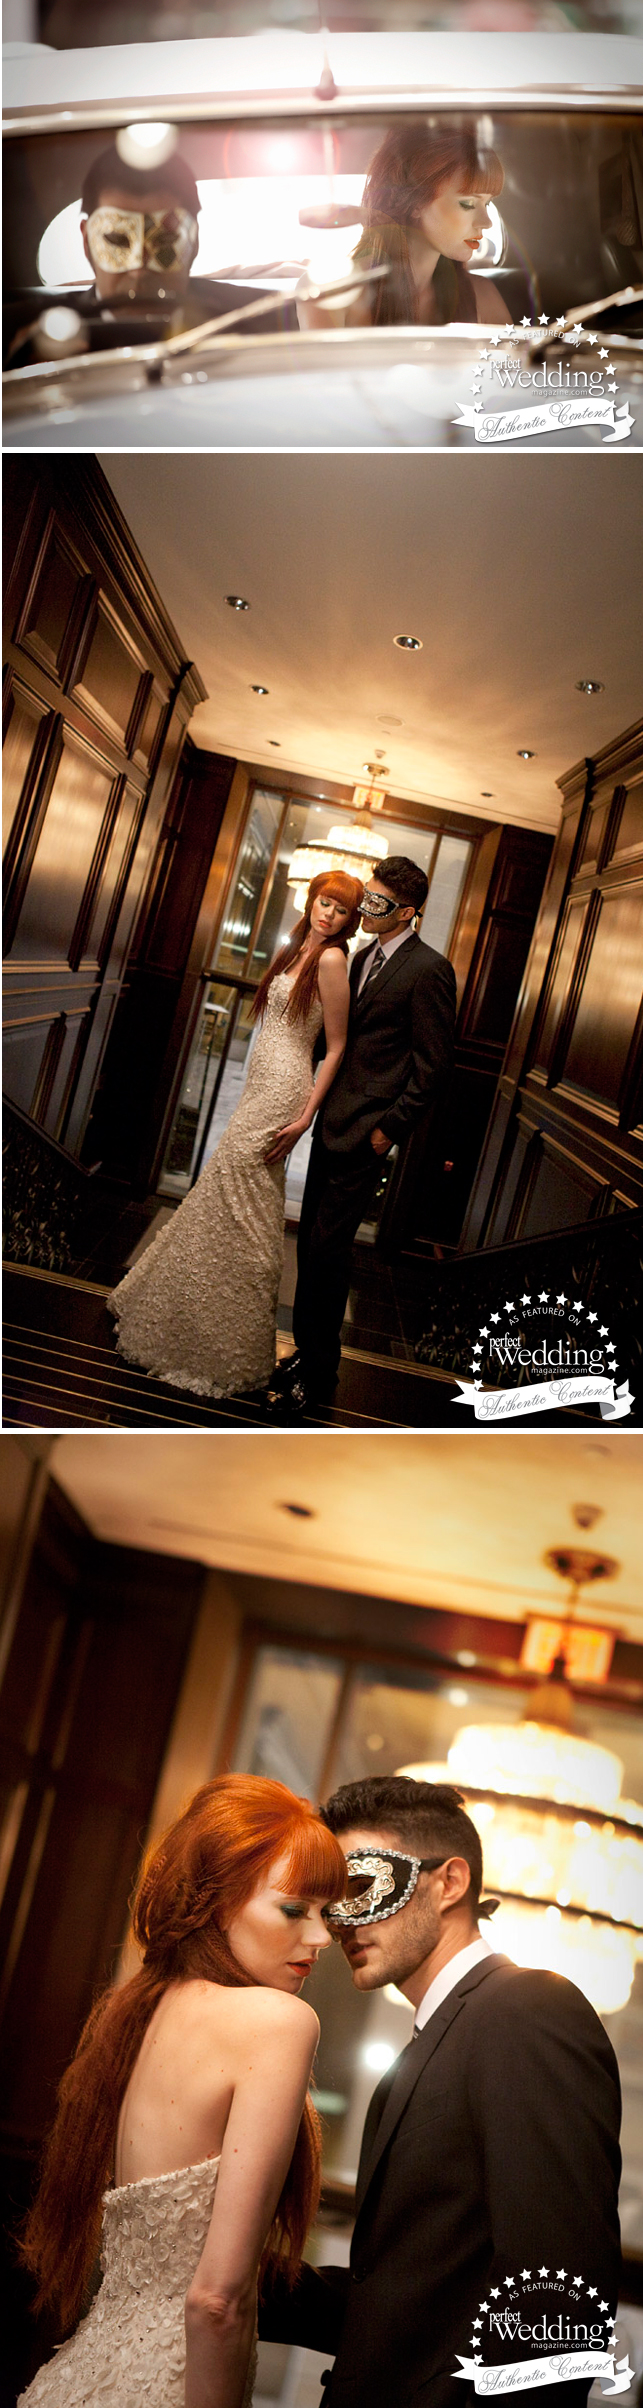 Halloween Wedding, Wedding Inspiration, Bridal Trends, Halloween Bridal Theme, Rosewood Hotel Georgia, Perfect Wedding Magazine, Perfect Wedding Magazine Blog, Vera Wang Bridal, Halloween Bridal Makeup, Romona Keveza